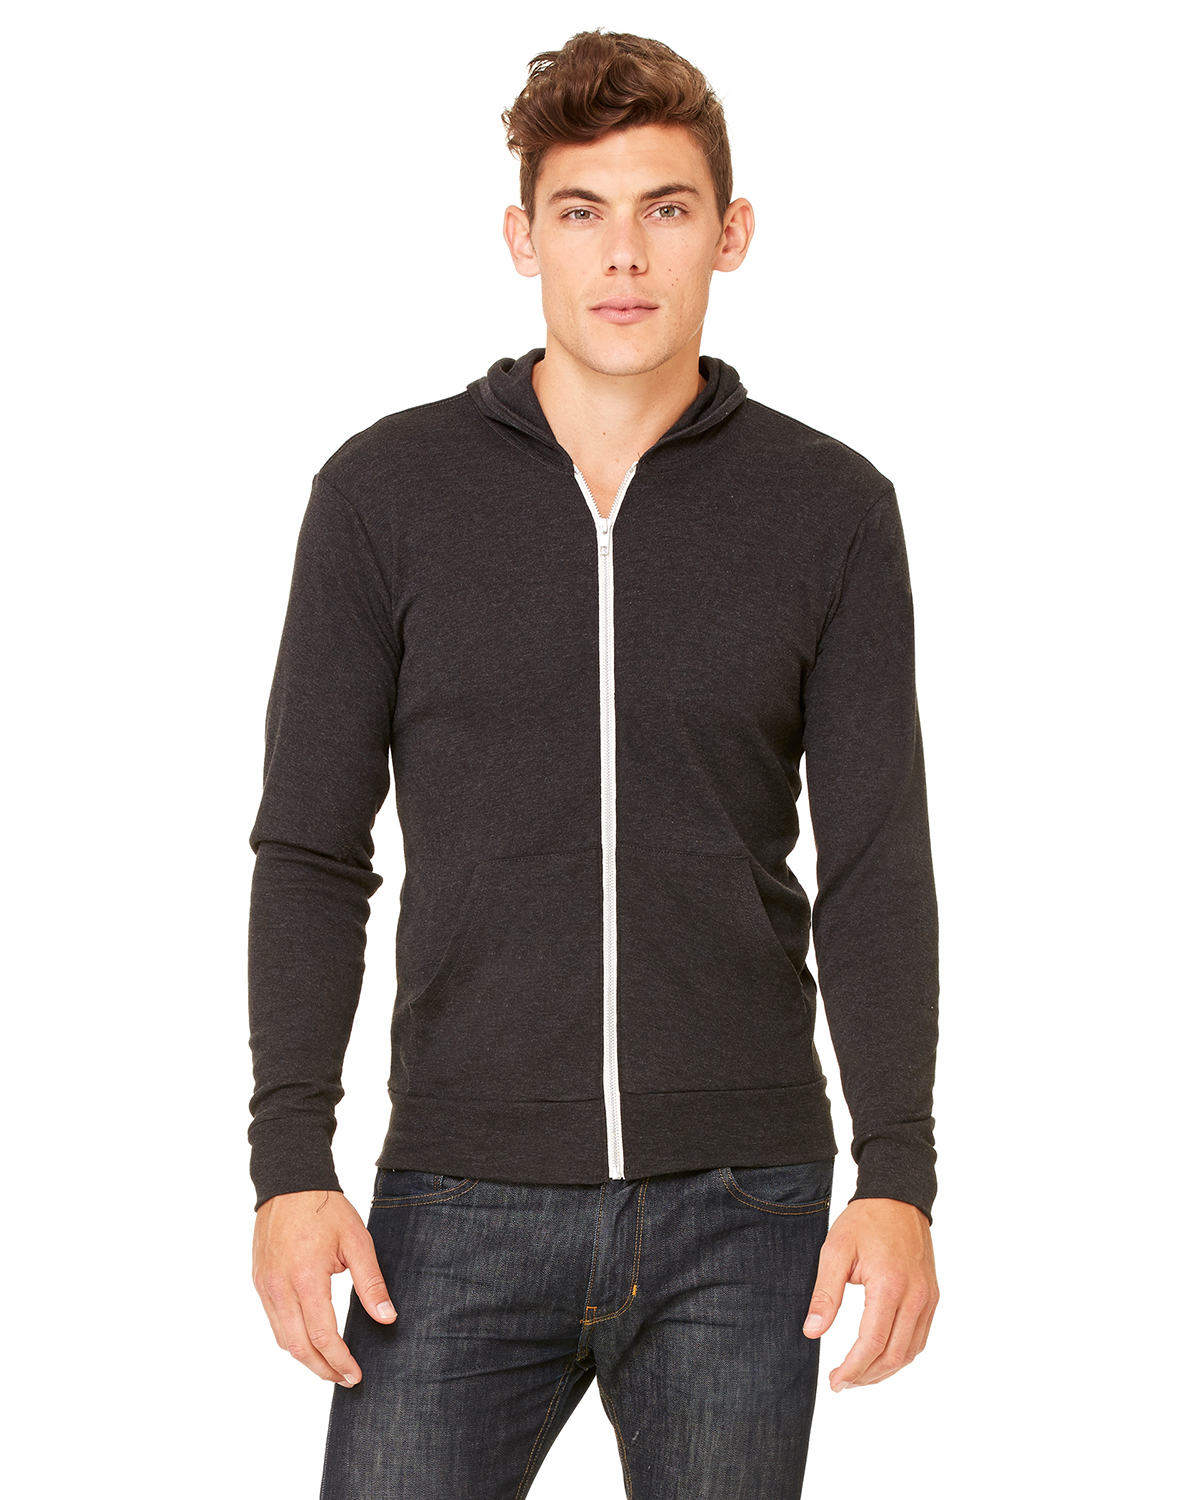 Bella C3939 - TriBlend Full-Zip Lightweight Hoodie